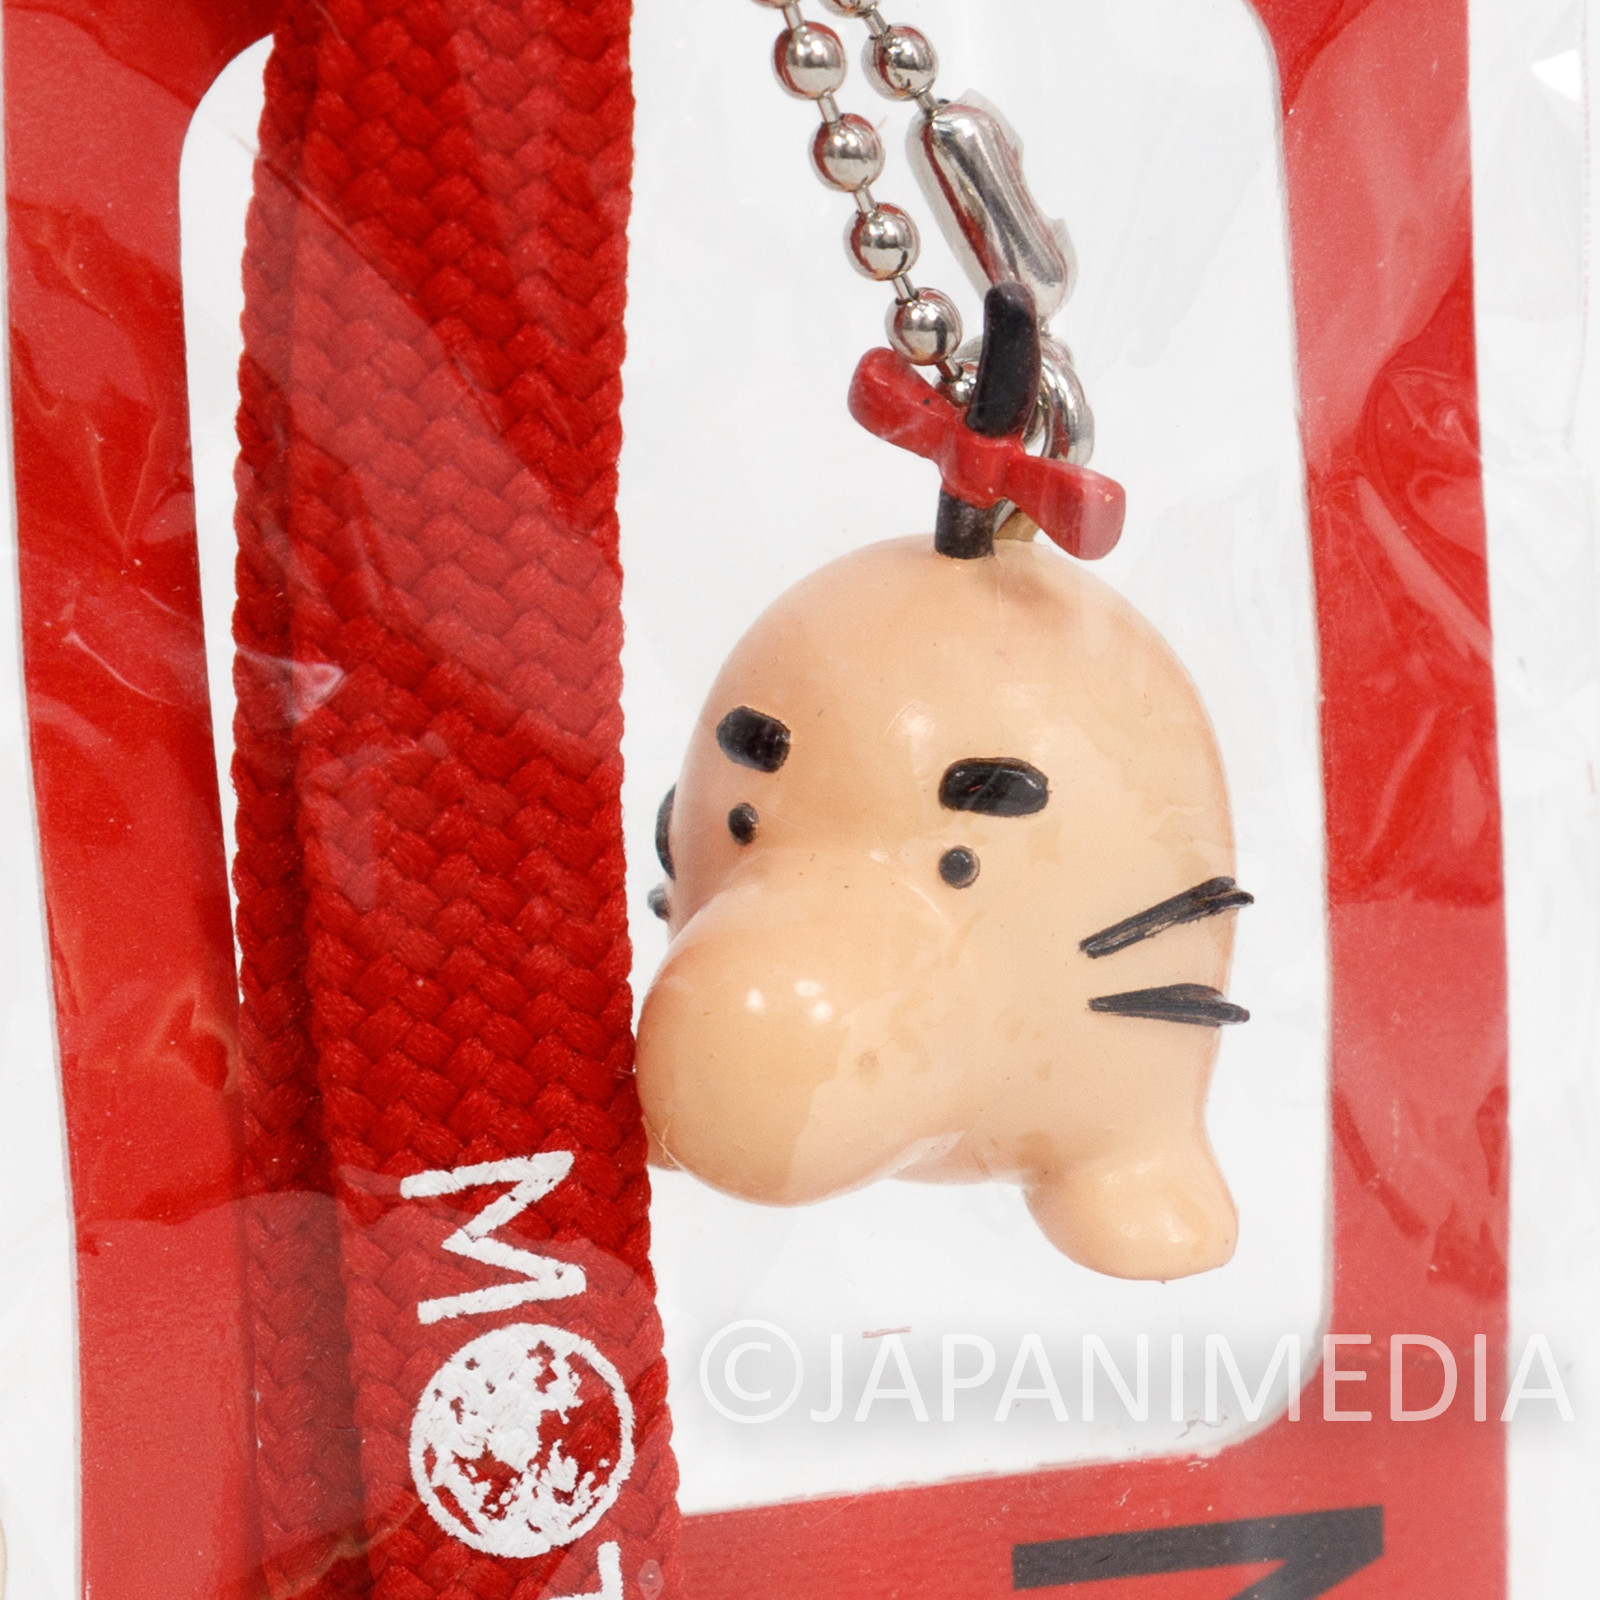 Mother 1+2 GBA Limited Doseisan Figure Strap JAPAN GAME NES FAMICOM NINTENDO